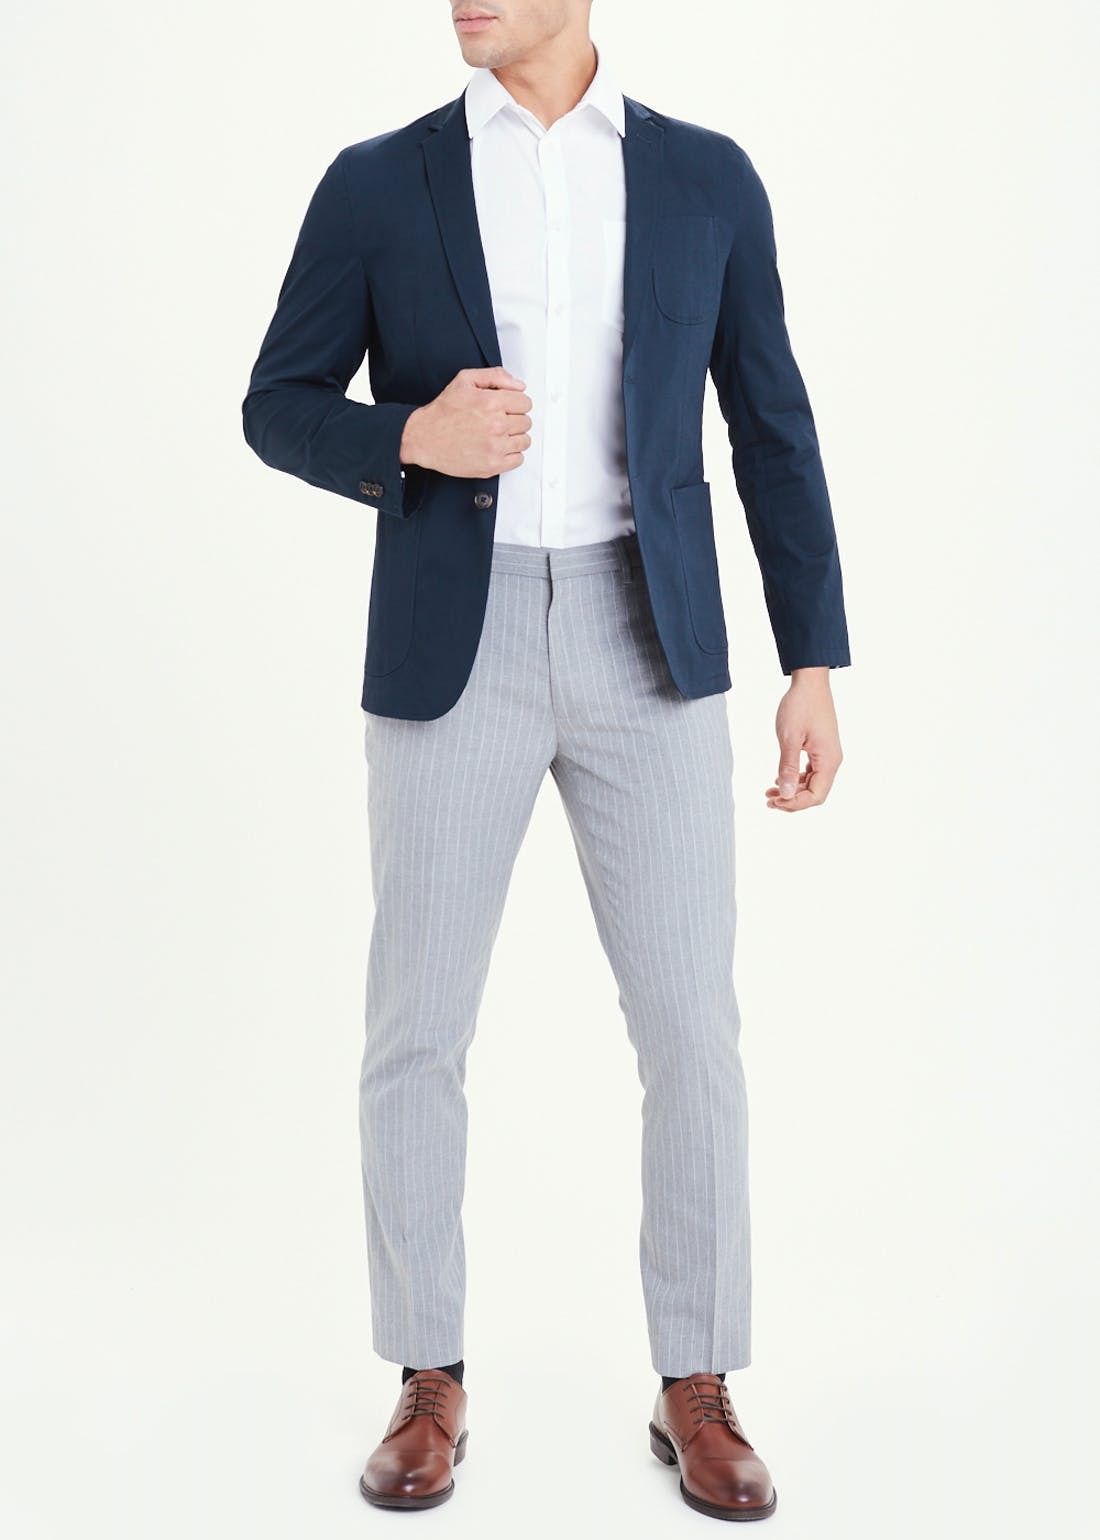 Taylor & Wright Navy Slim Fit Blazer